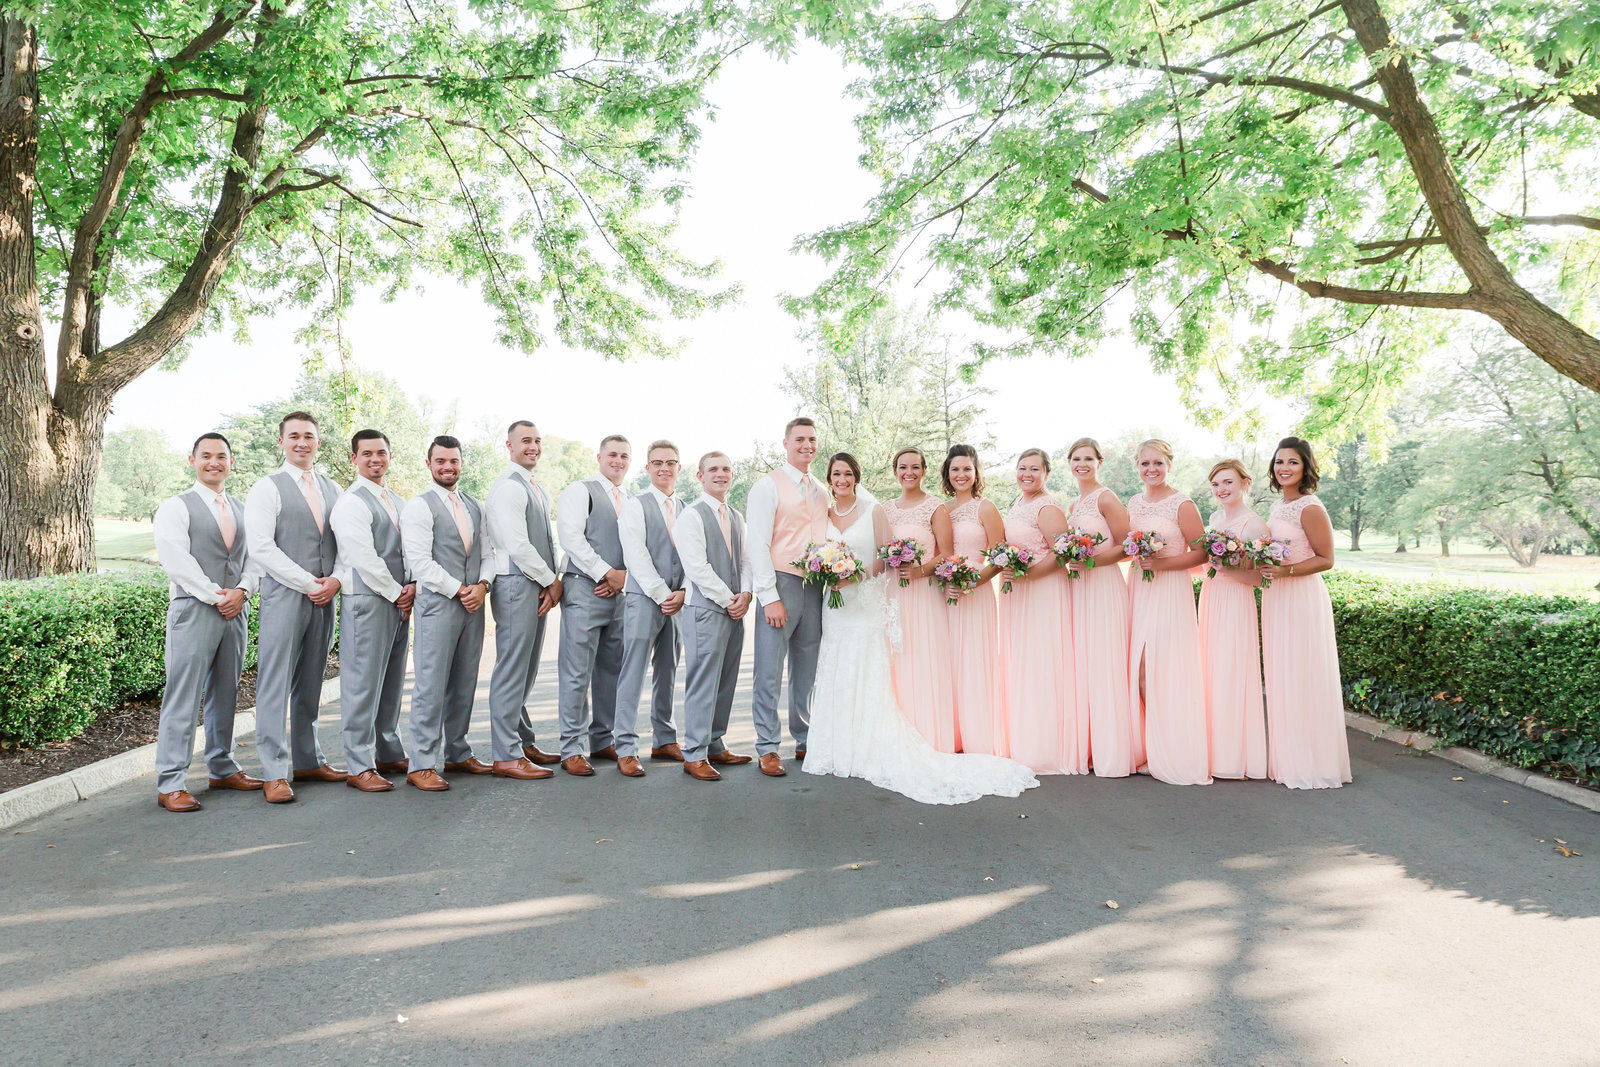 Bridal party at Orchard Ridge Country Club wedding